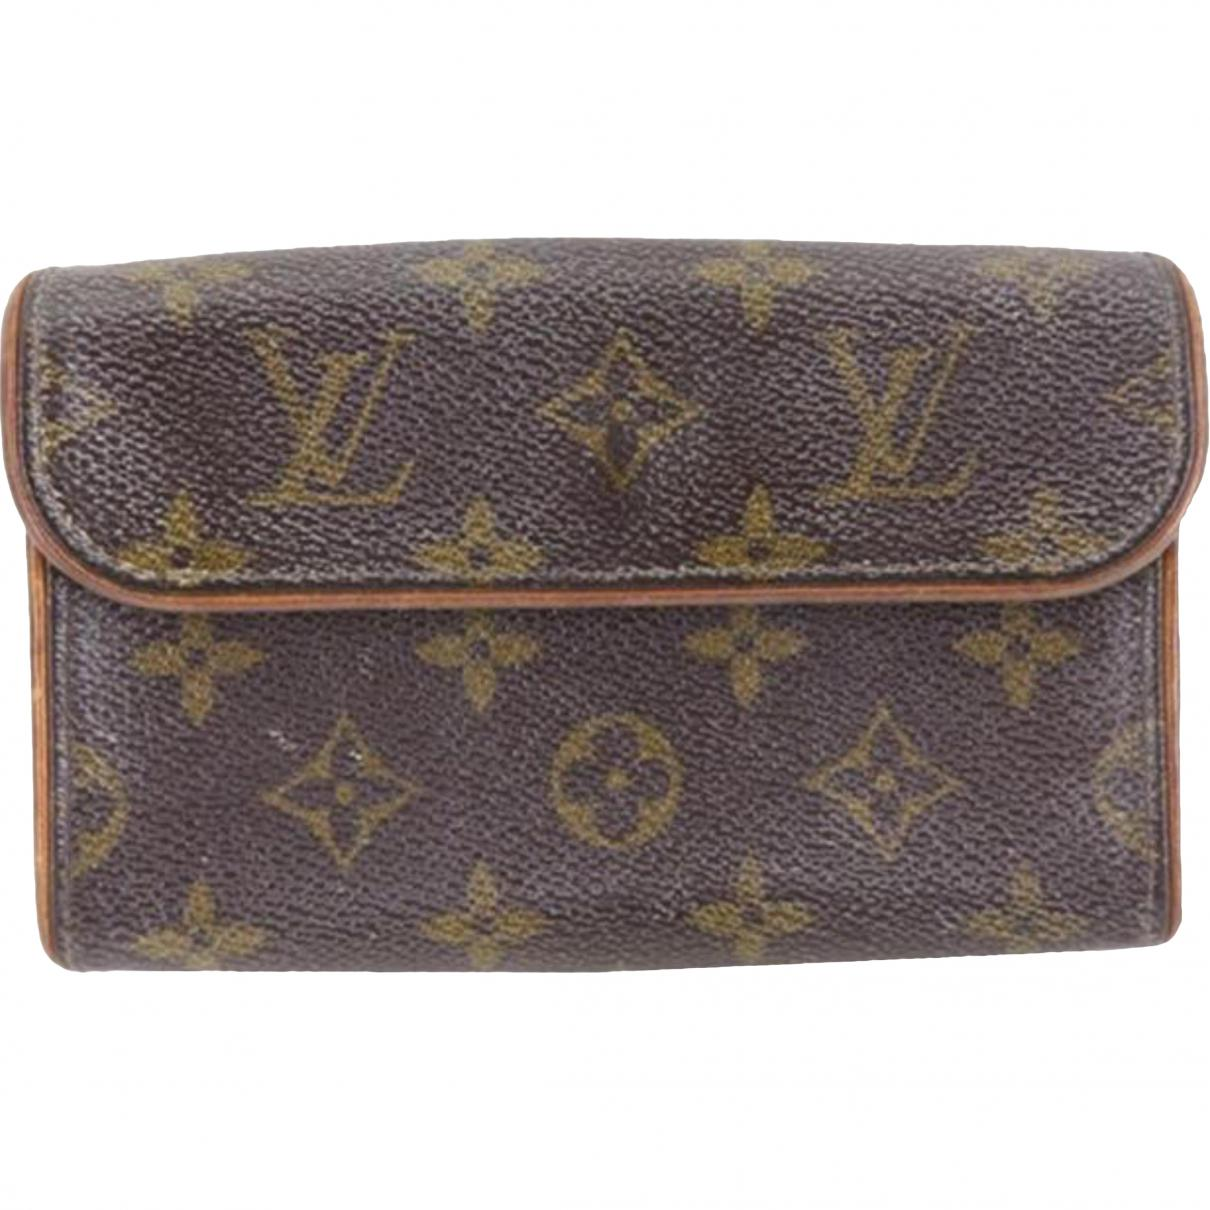 Pre-owned - Cloth clutch bag Louis Vuitton